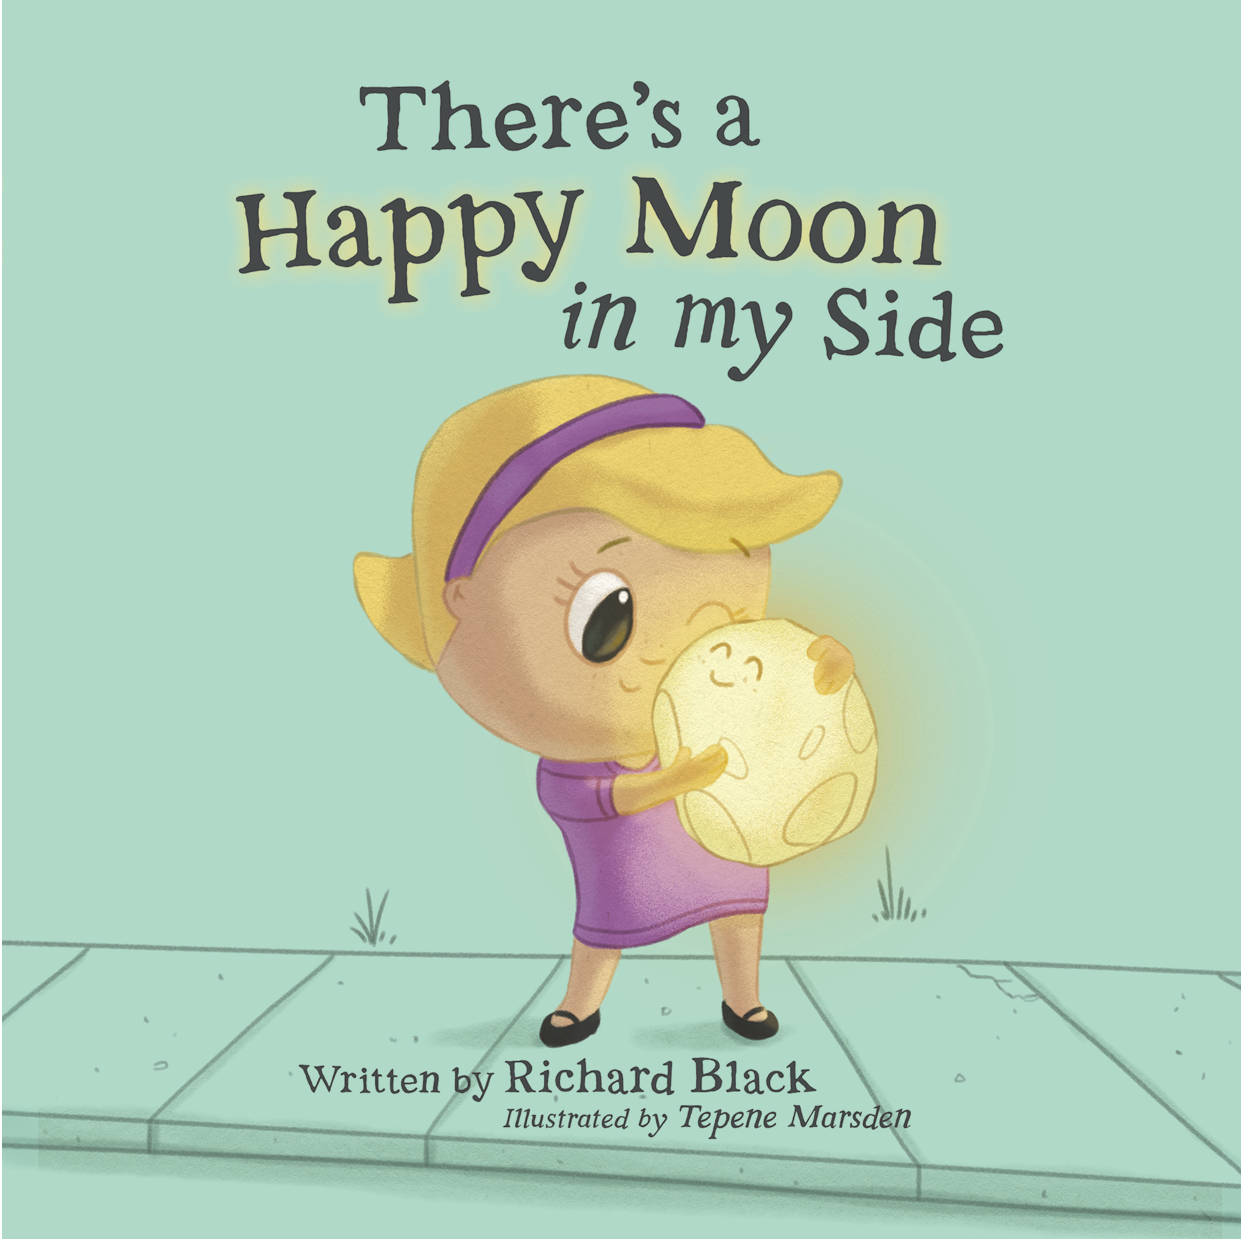 There's a Happy Moon Resource for Children's Ministries & Faith-based Families